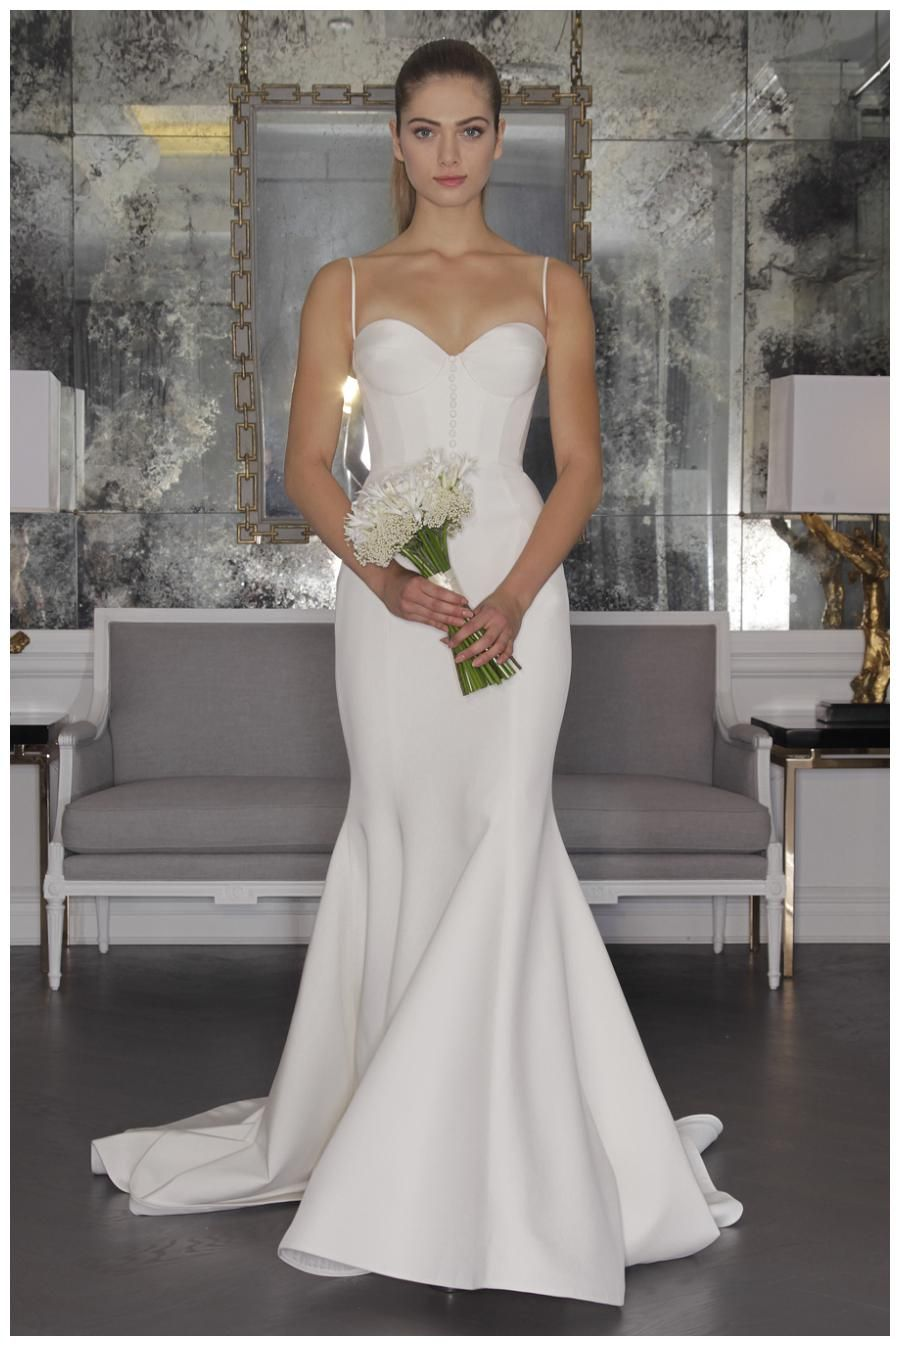 Southern style wedding dresses  Romona Keveza Luxe Bridal Collection Fall   Weddings Unveiled